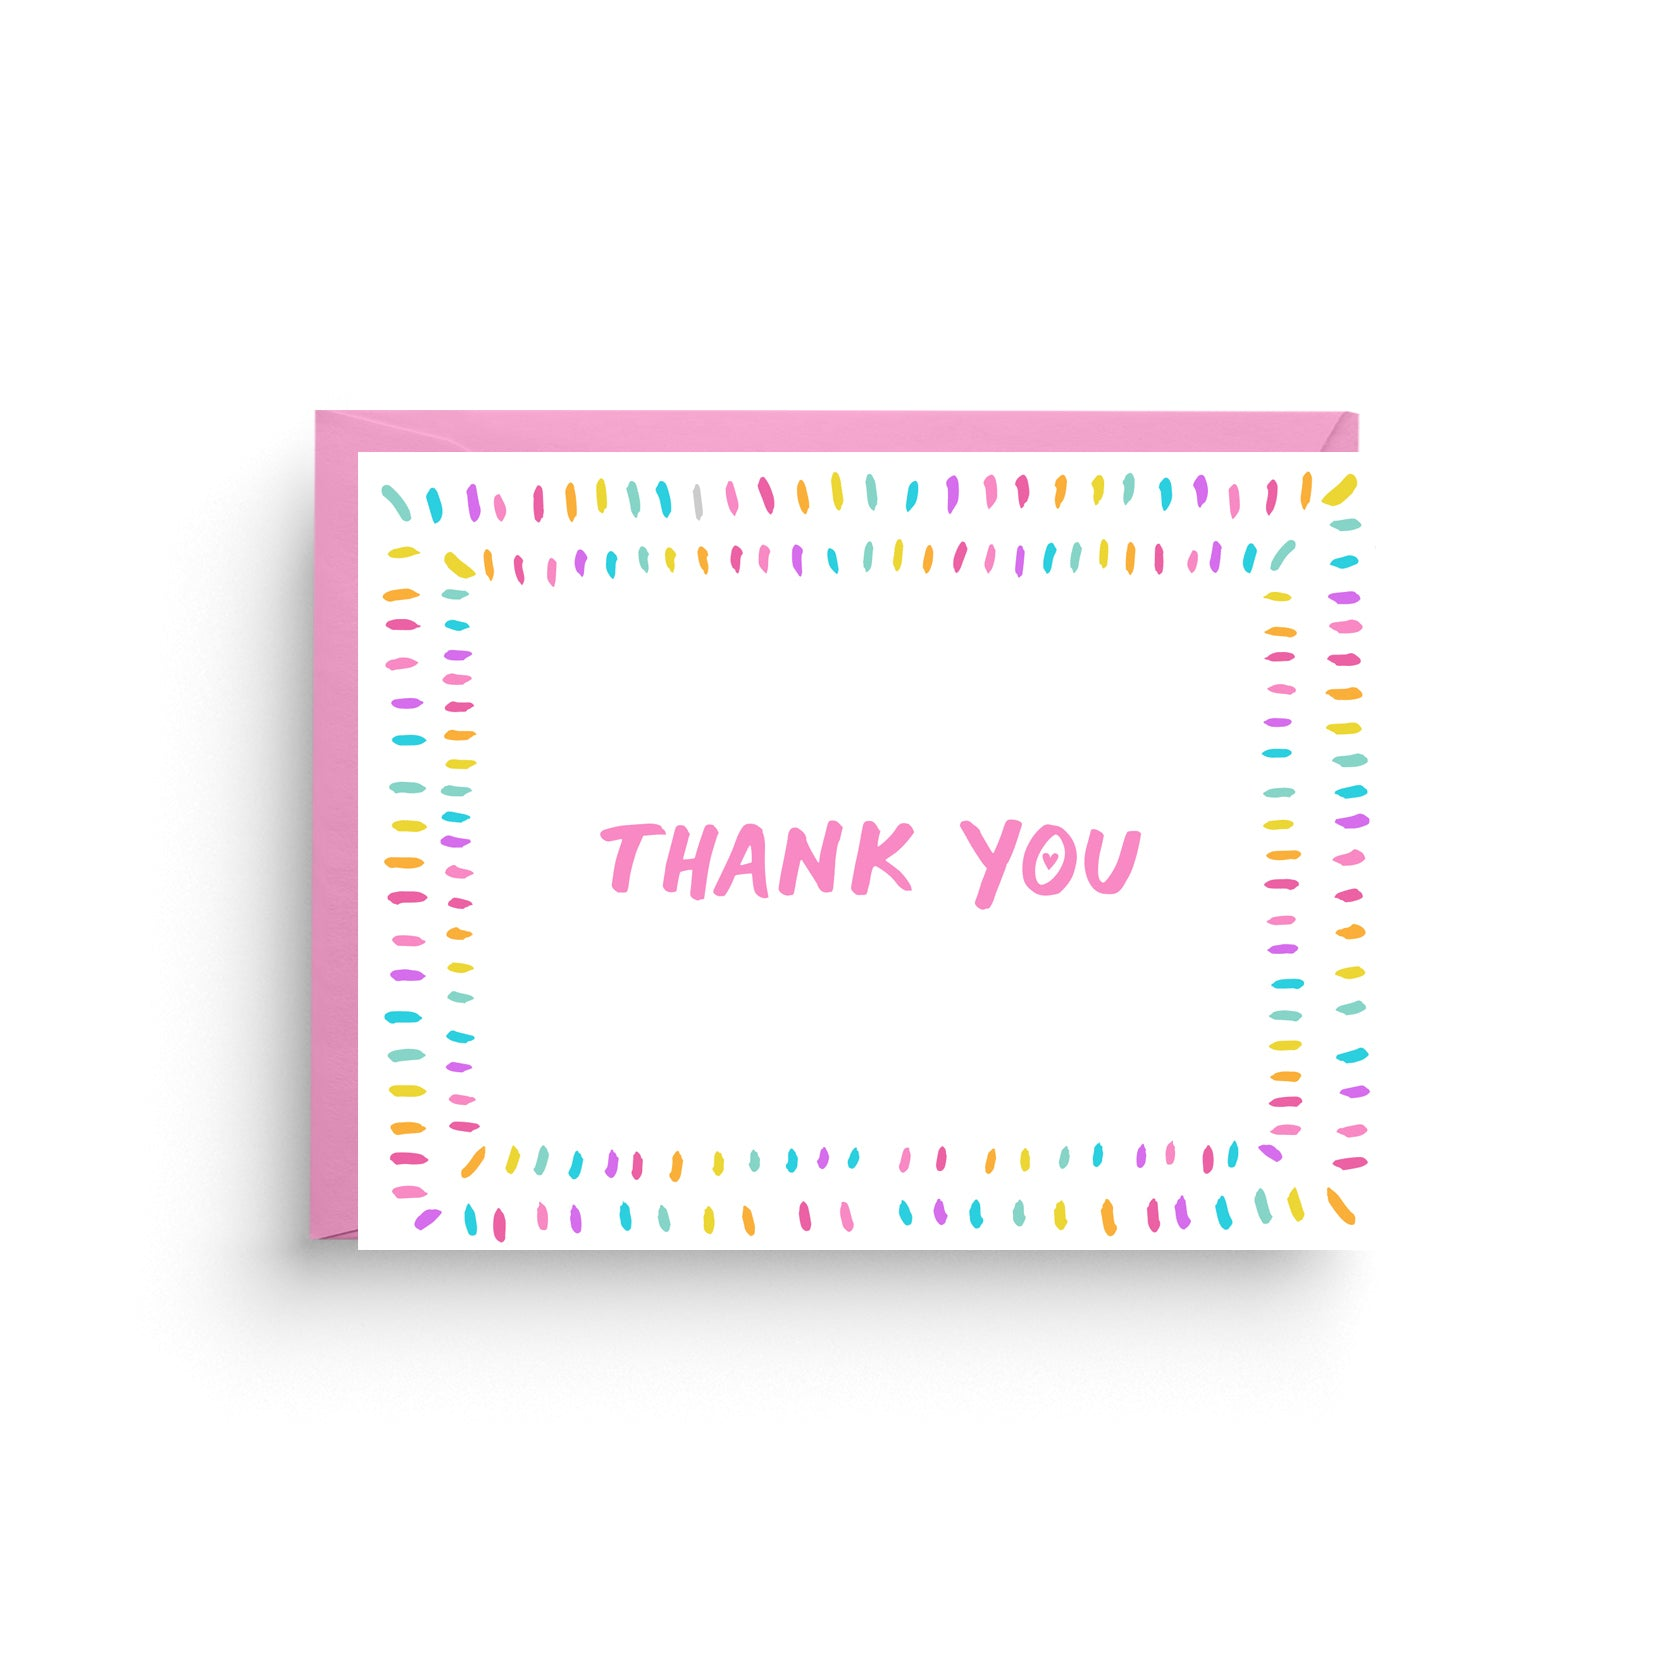 rainbow thank you, thank you card, rainbow note card, stationery card, birthday thank you, boxed set of cards, stationery boxed set, wedding thank you, shower thank you, baby shower card, bridal party card, pink thank you, boxed set of 6